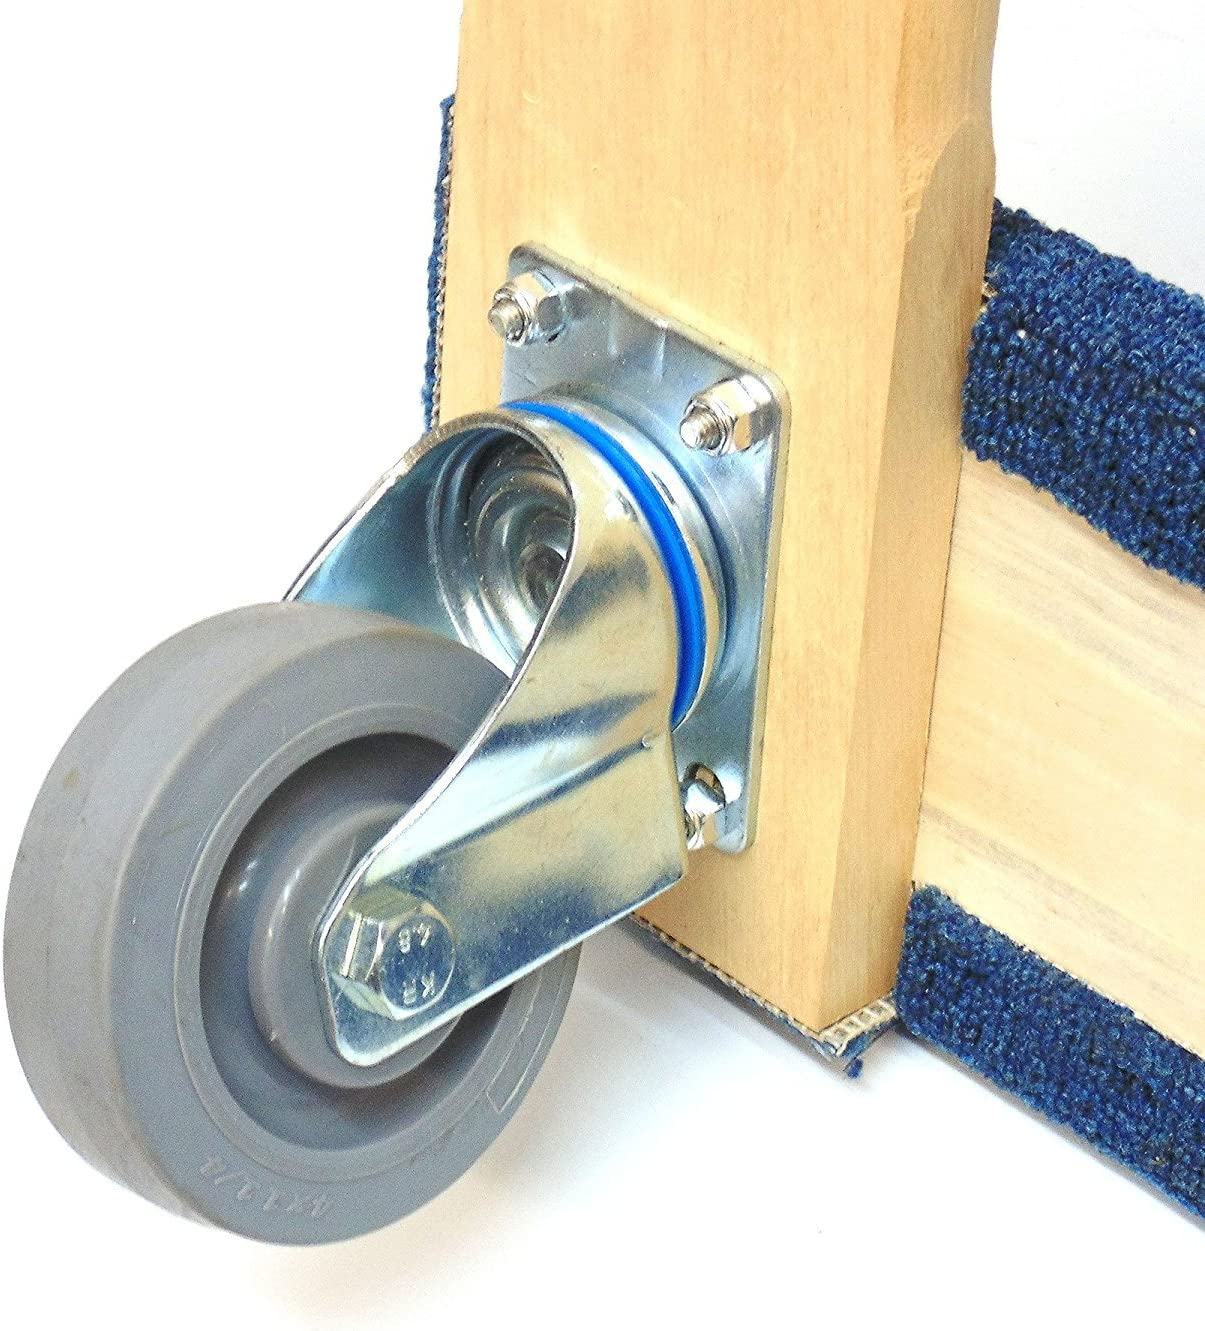 Troy Safety Movers Dolly with Soft Non-Marking TPR Wheels 3-Inch Wheels, Blue